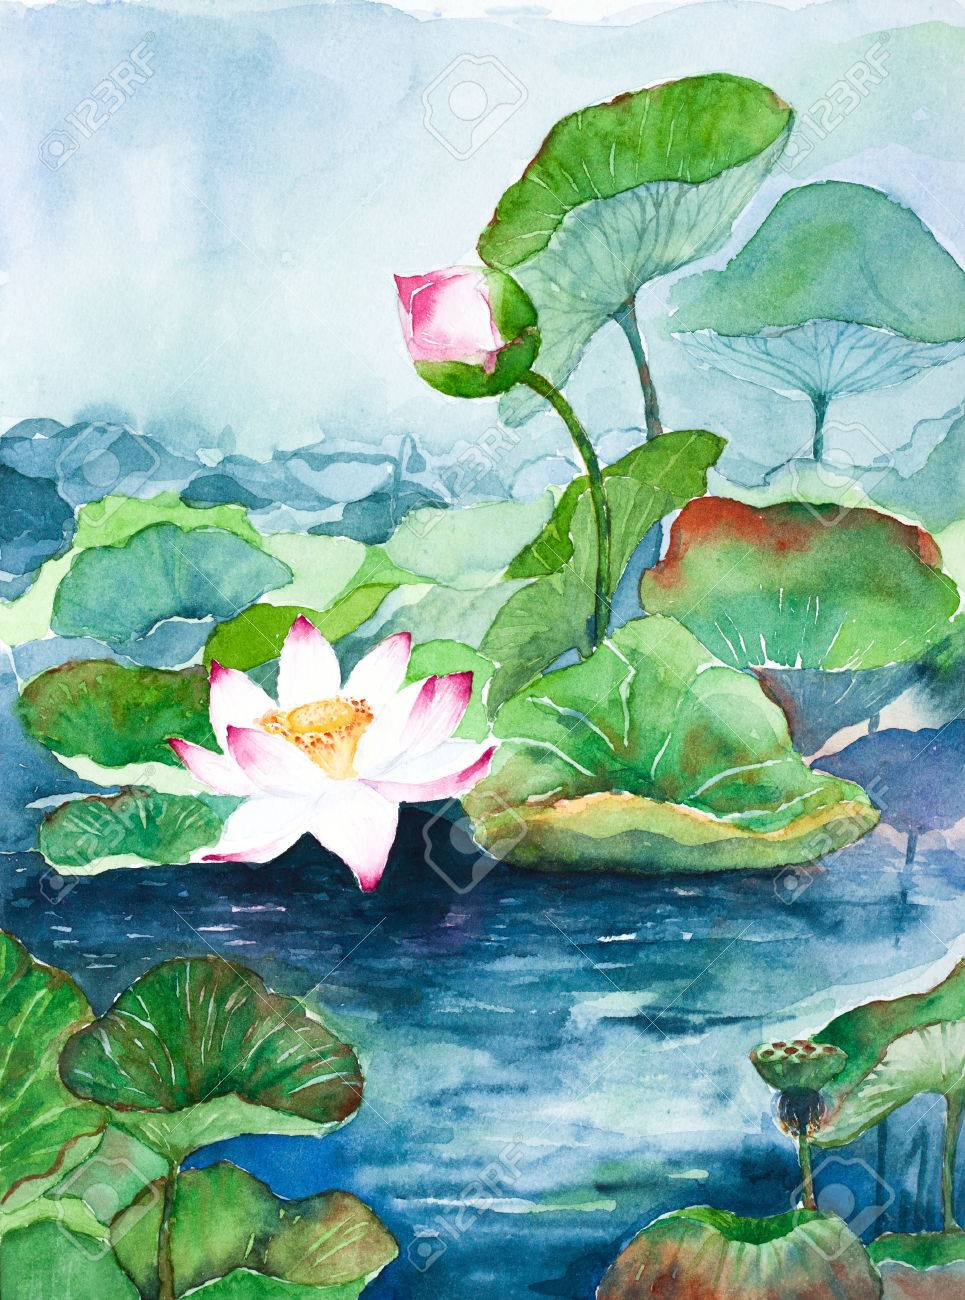 Lotus Flower Watercolor Painting Stock Photo Picture And Royalty